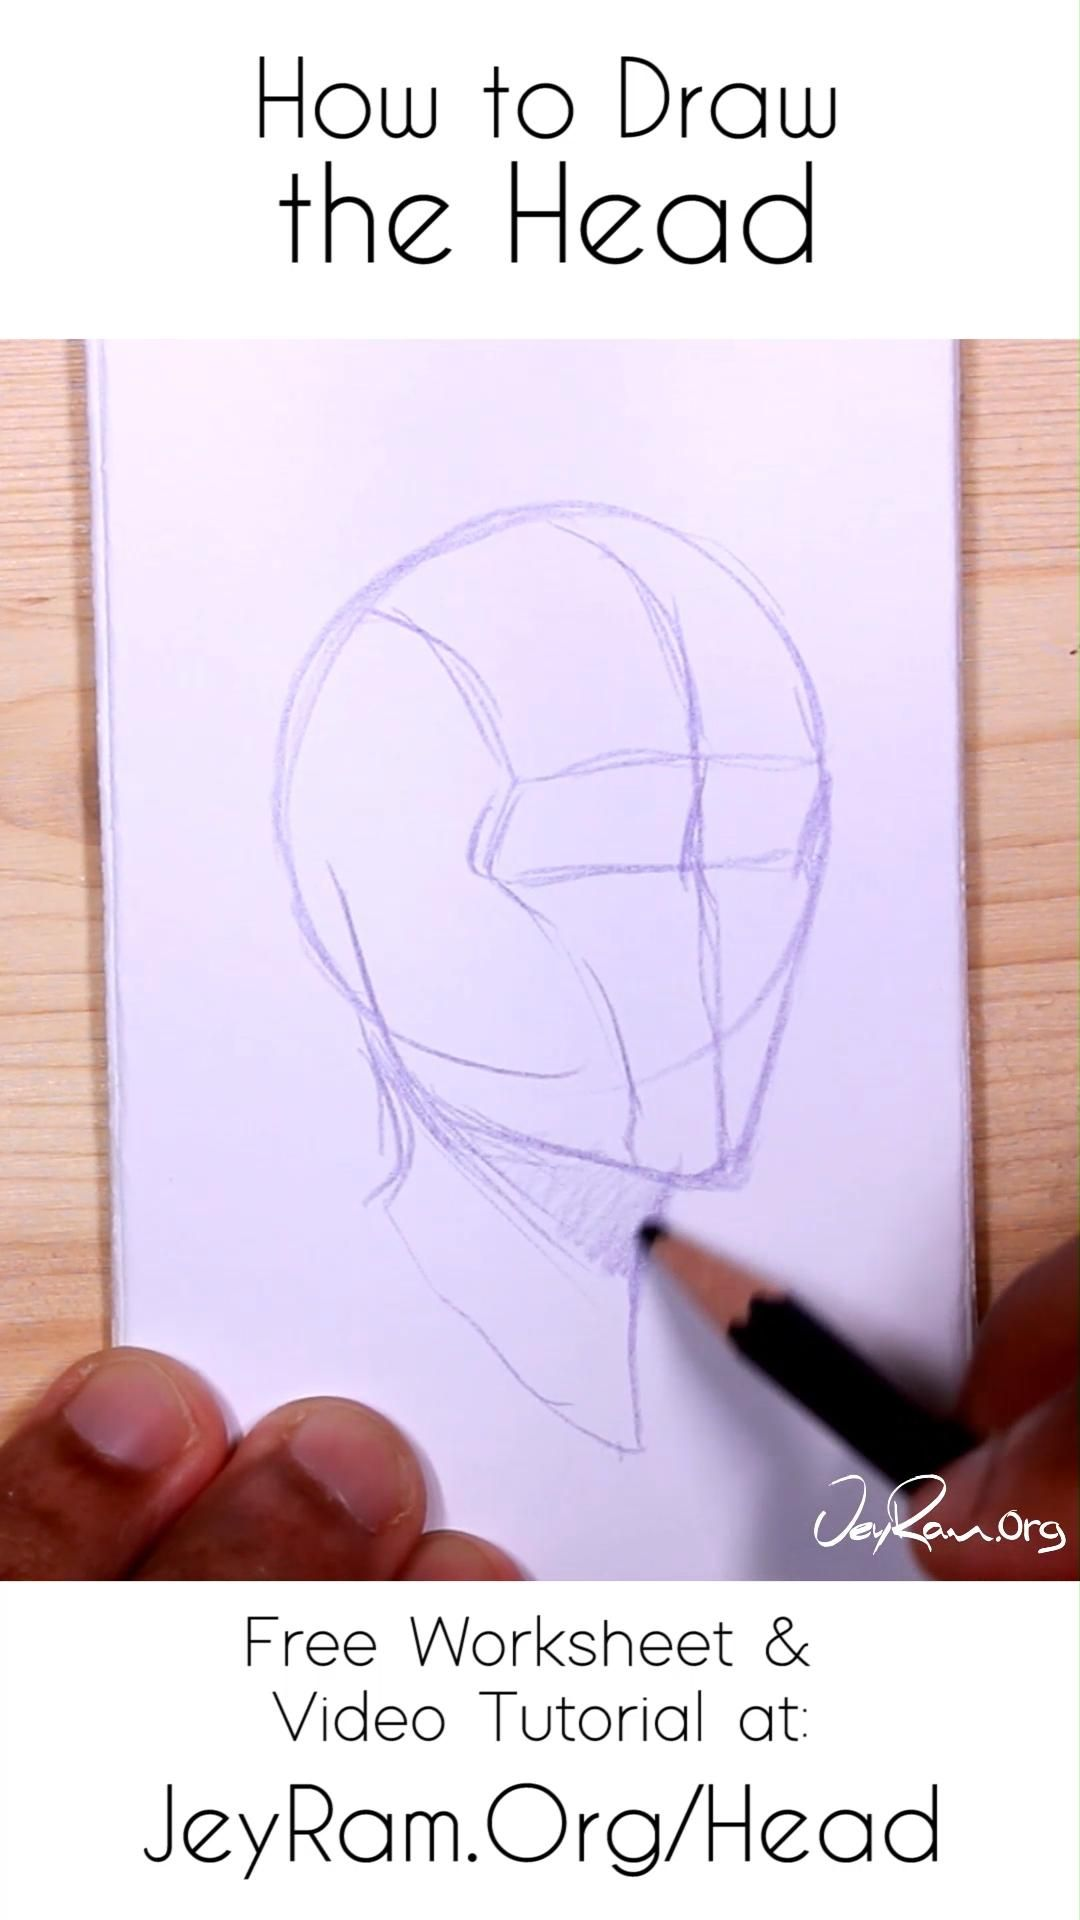 Photo of How to Draw the Head: Free Worksheet & Video Tutorial